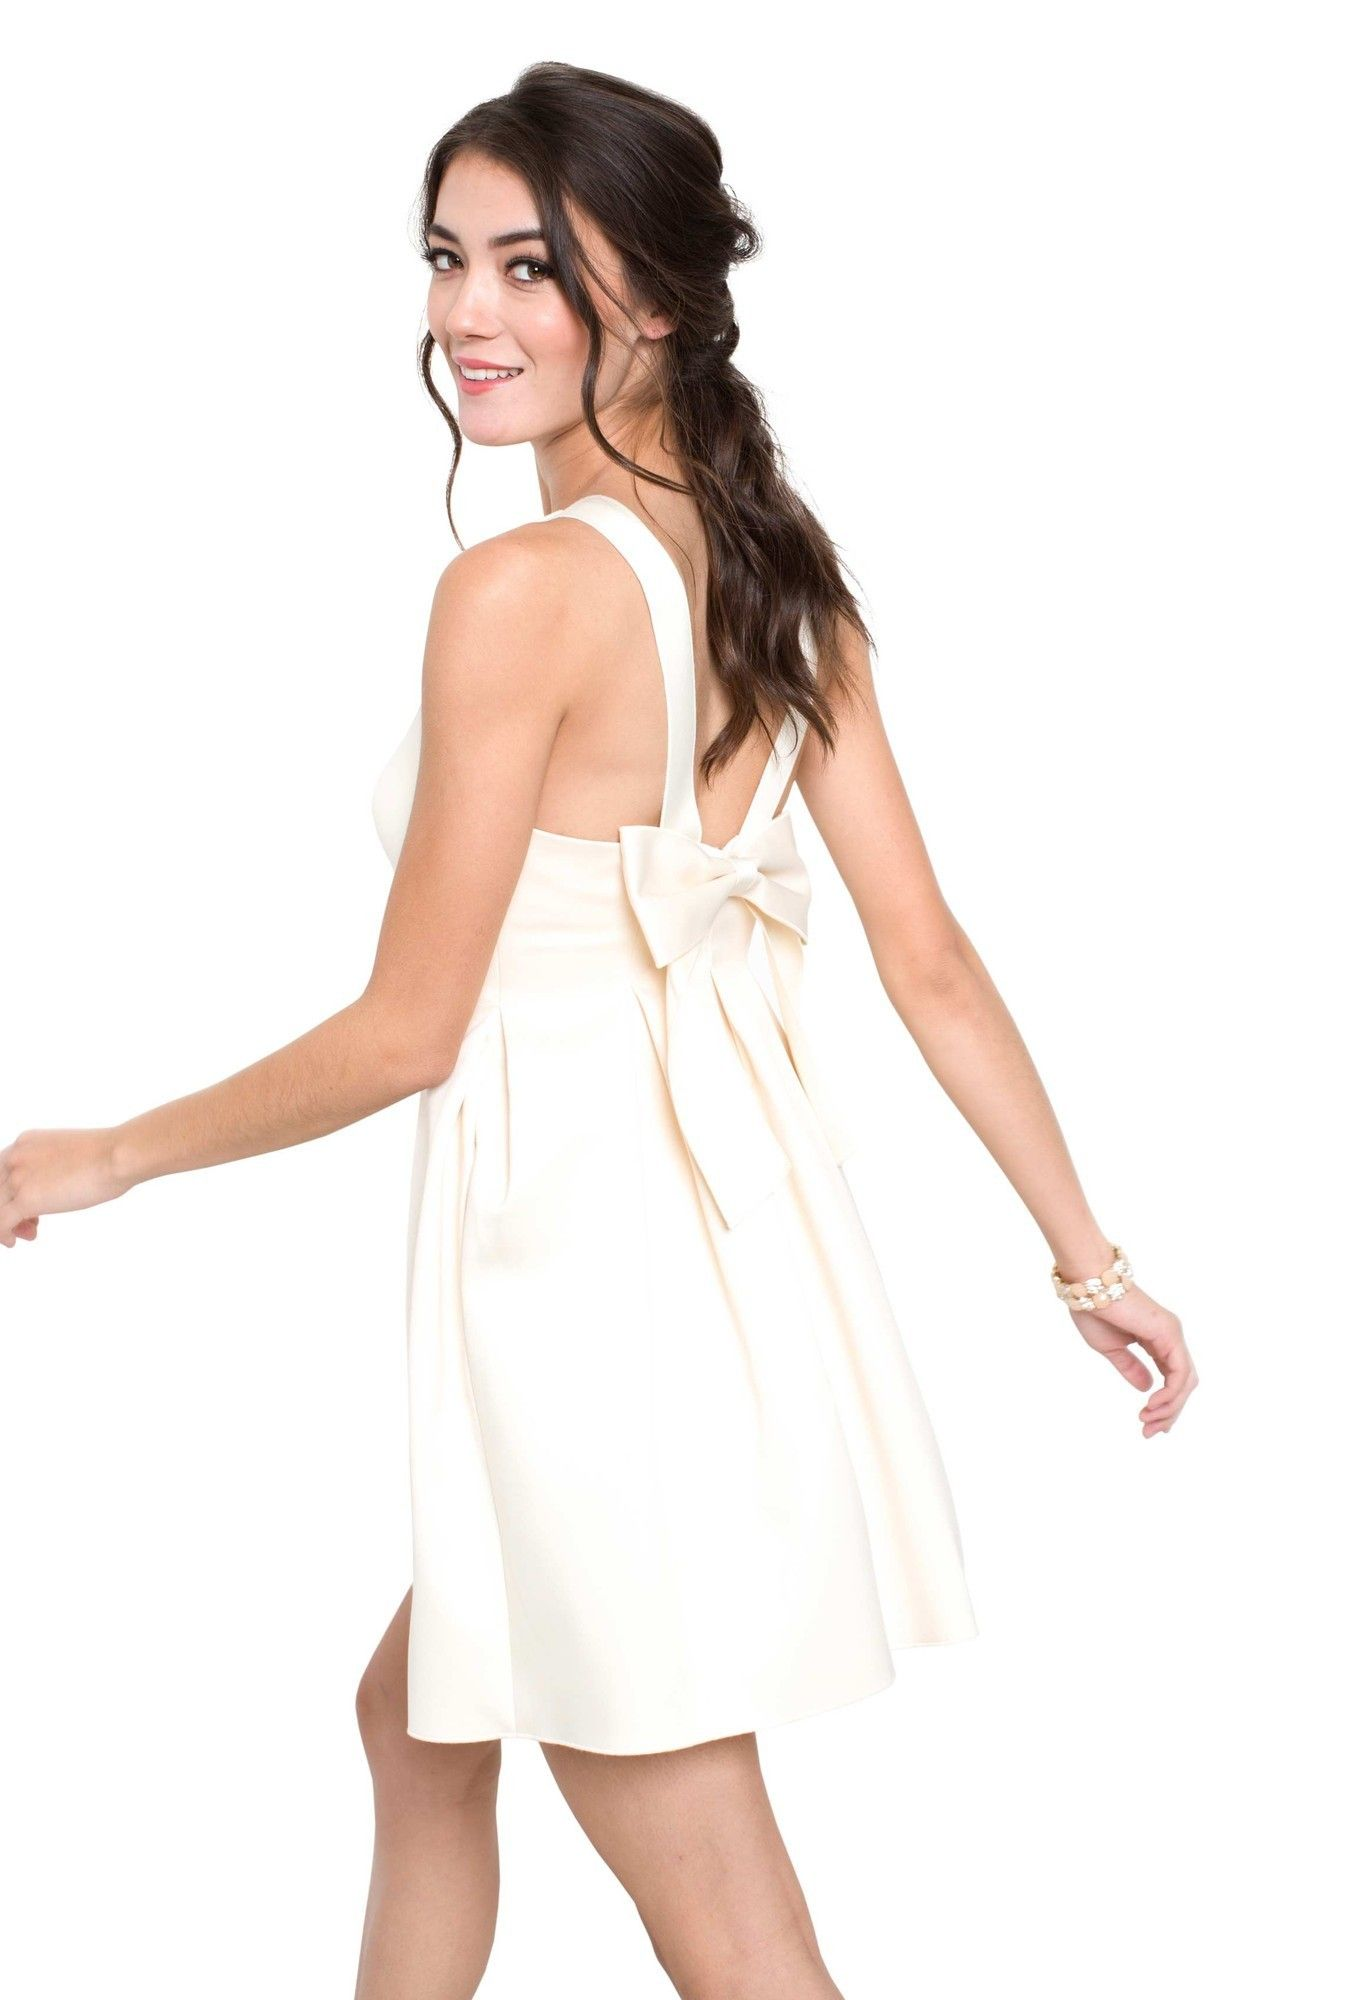 Cynthia Rowley Jenna Dress This Satin A Line Features Pleated Skirt Hidden Pockets And Low Back Bow Detail Is The Perfect Modern Take On